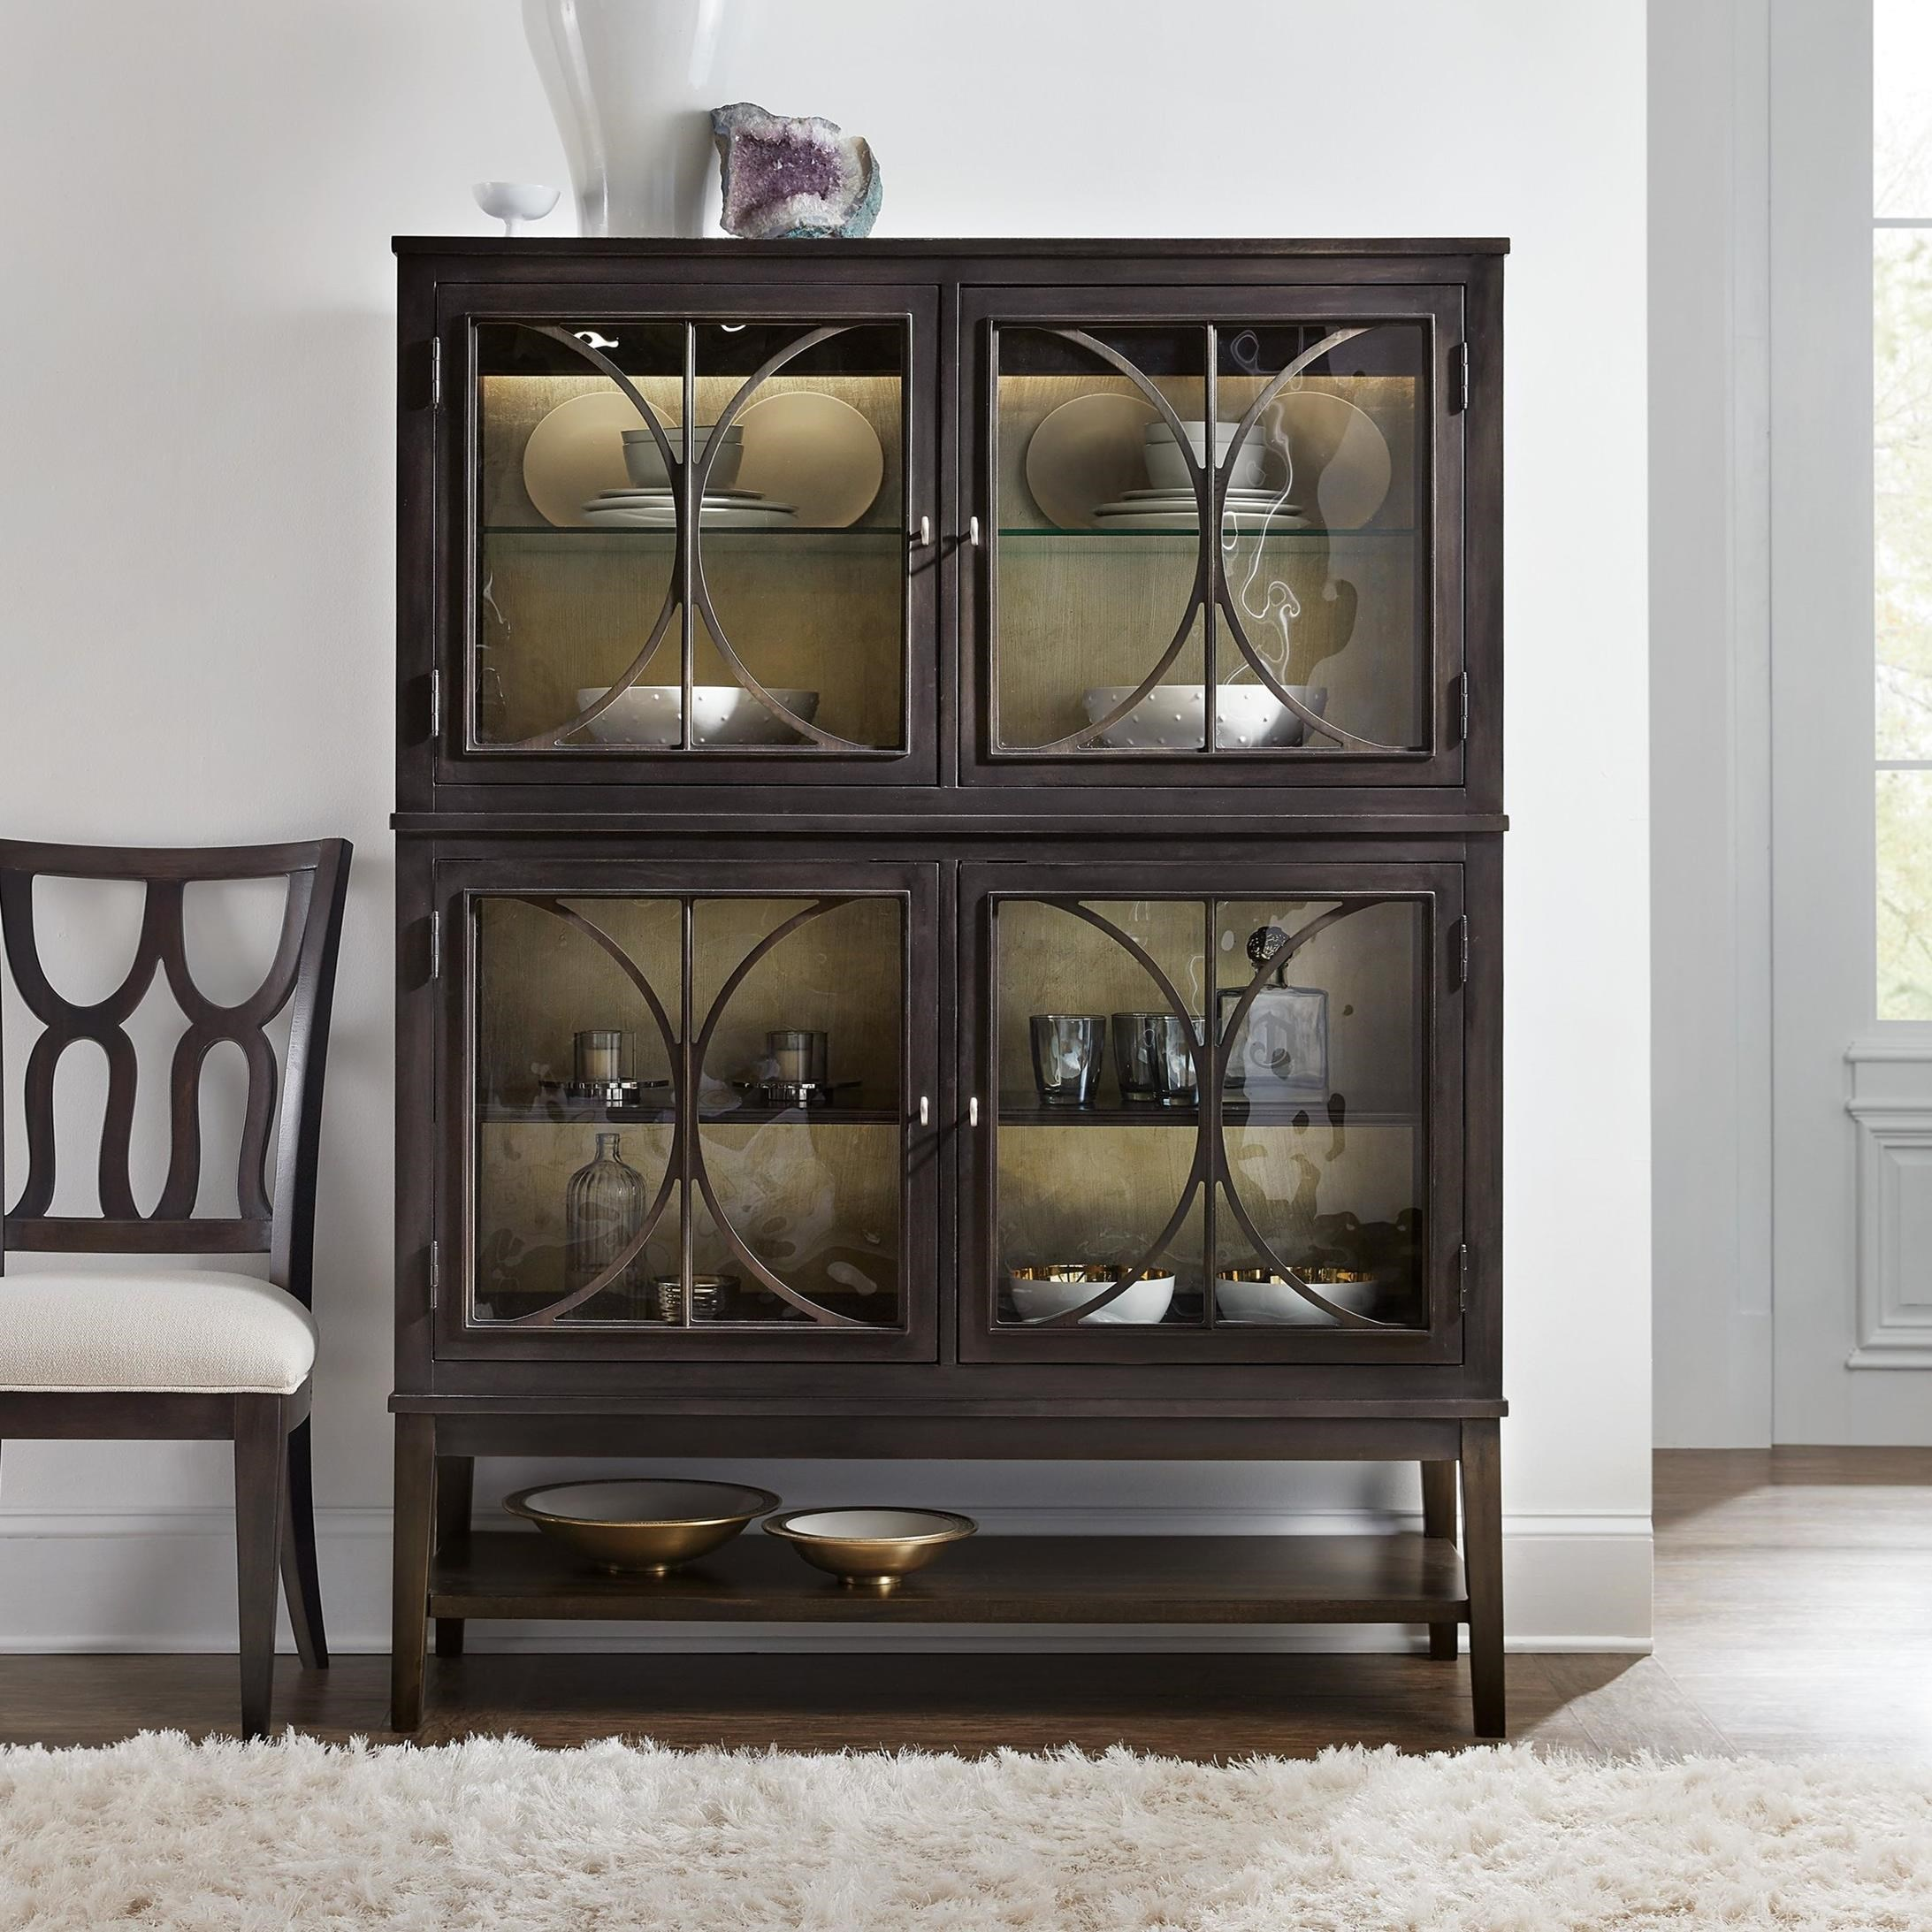 Hooker Furniture Curvee Glam Display Cabinet with Built-In ...